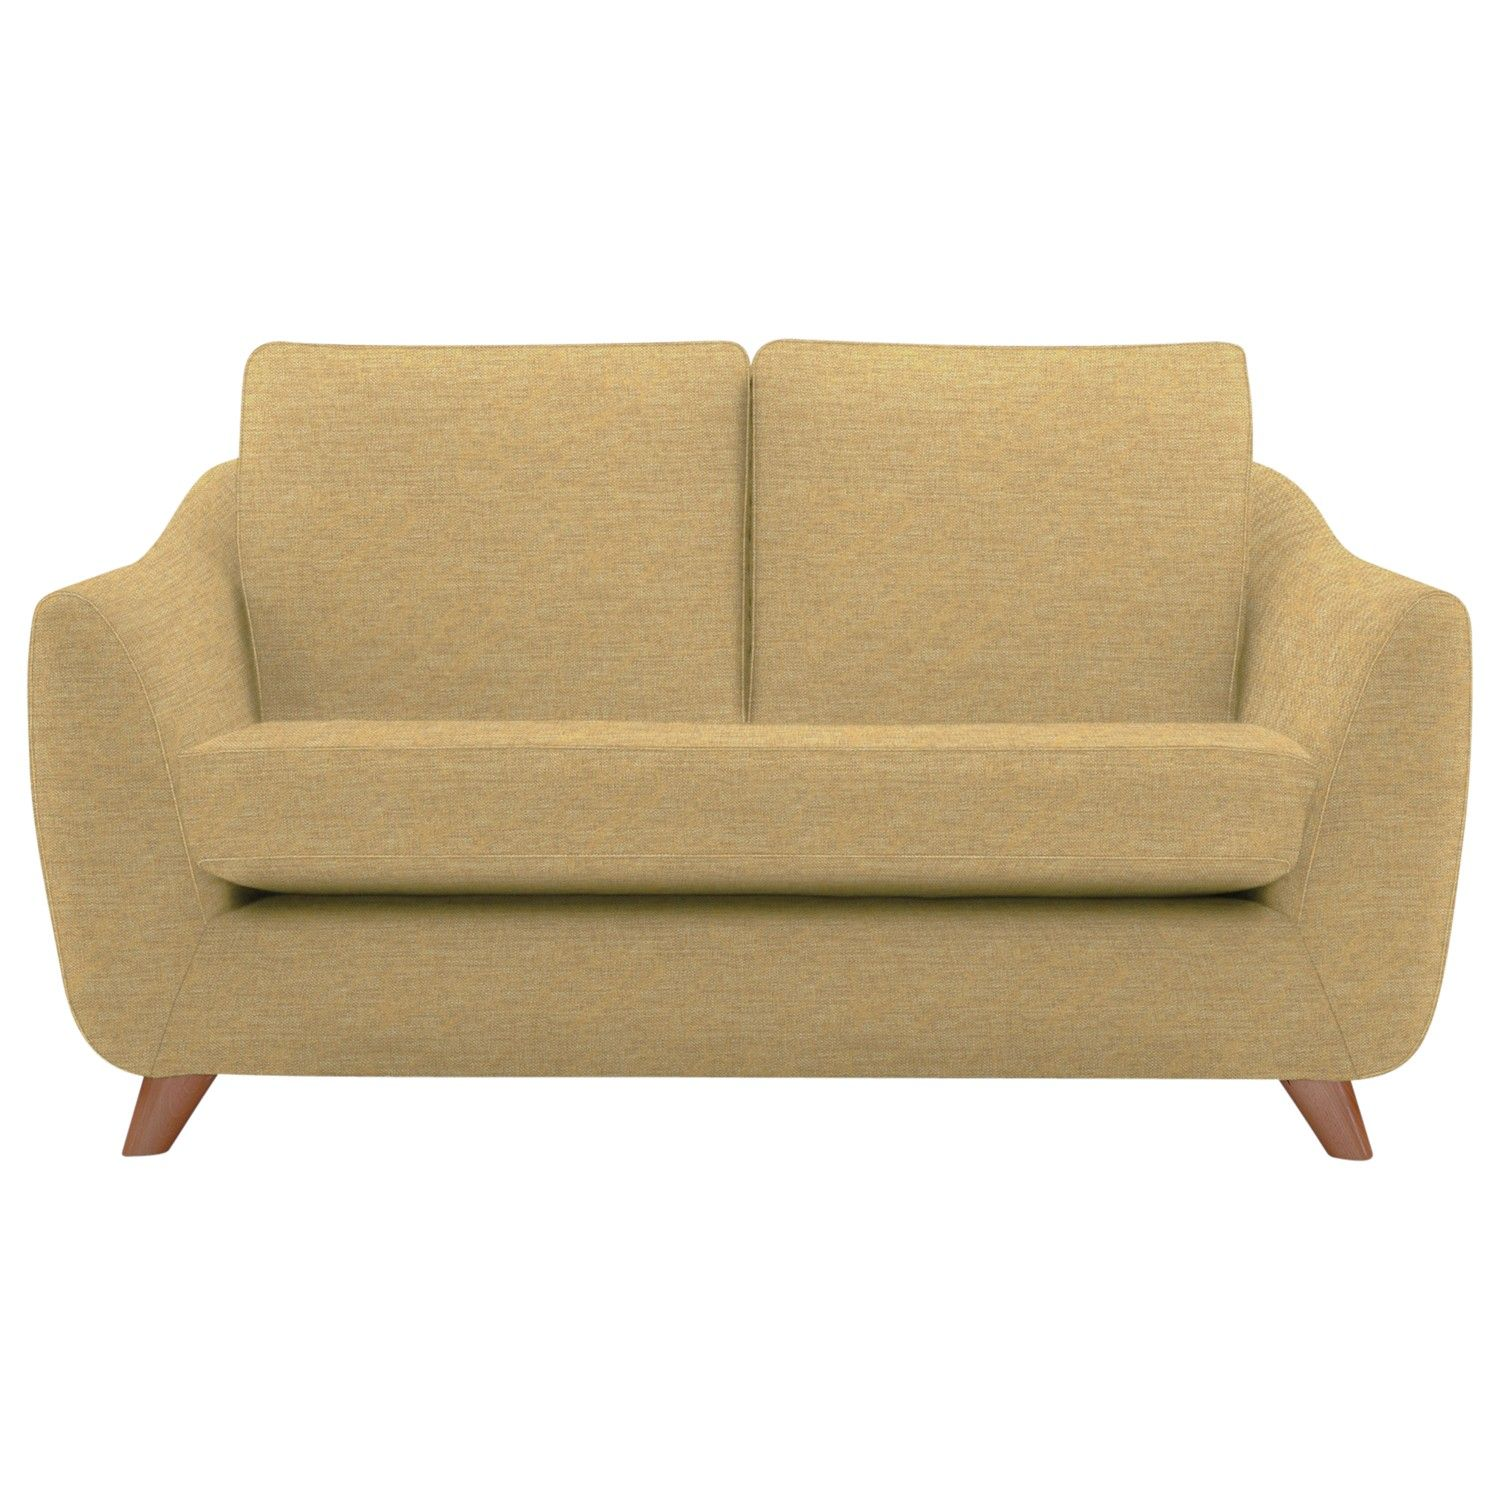 G Plan Vintage The Sixty Seven Small Sofa, Tonic Mustard from John ...